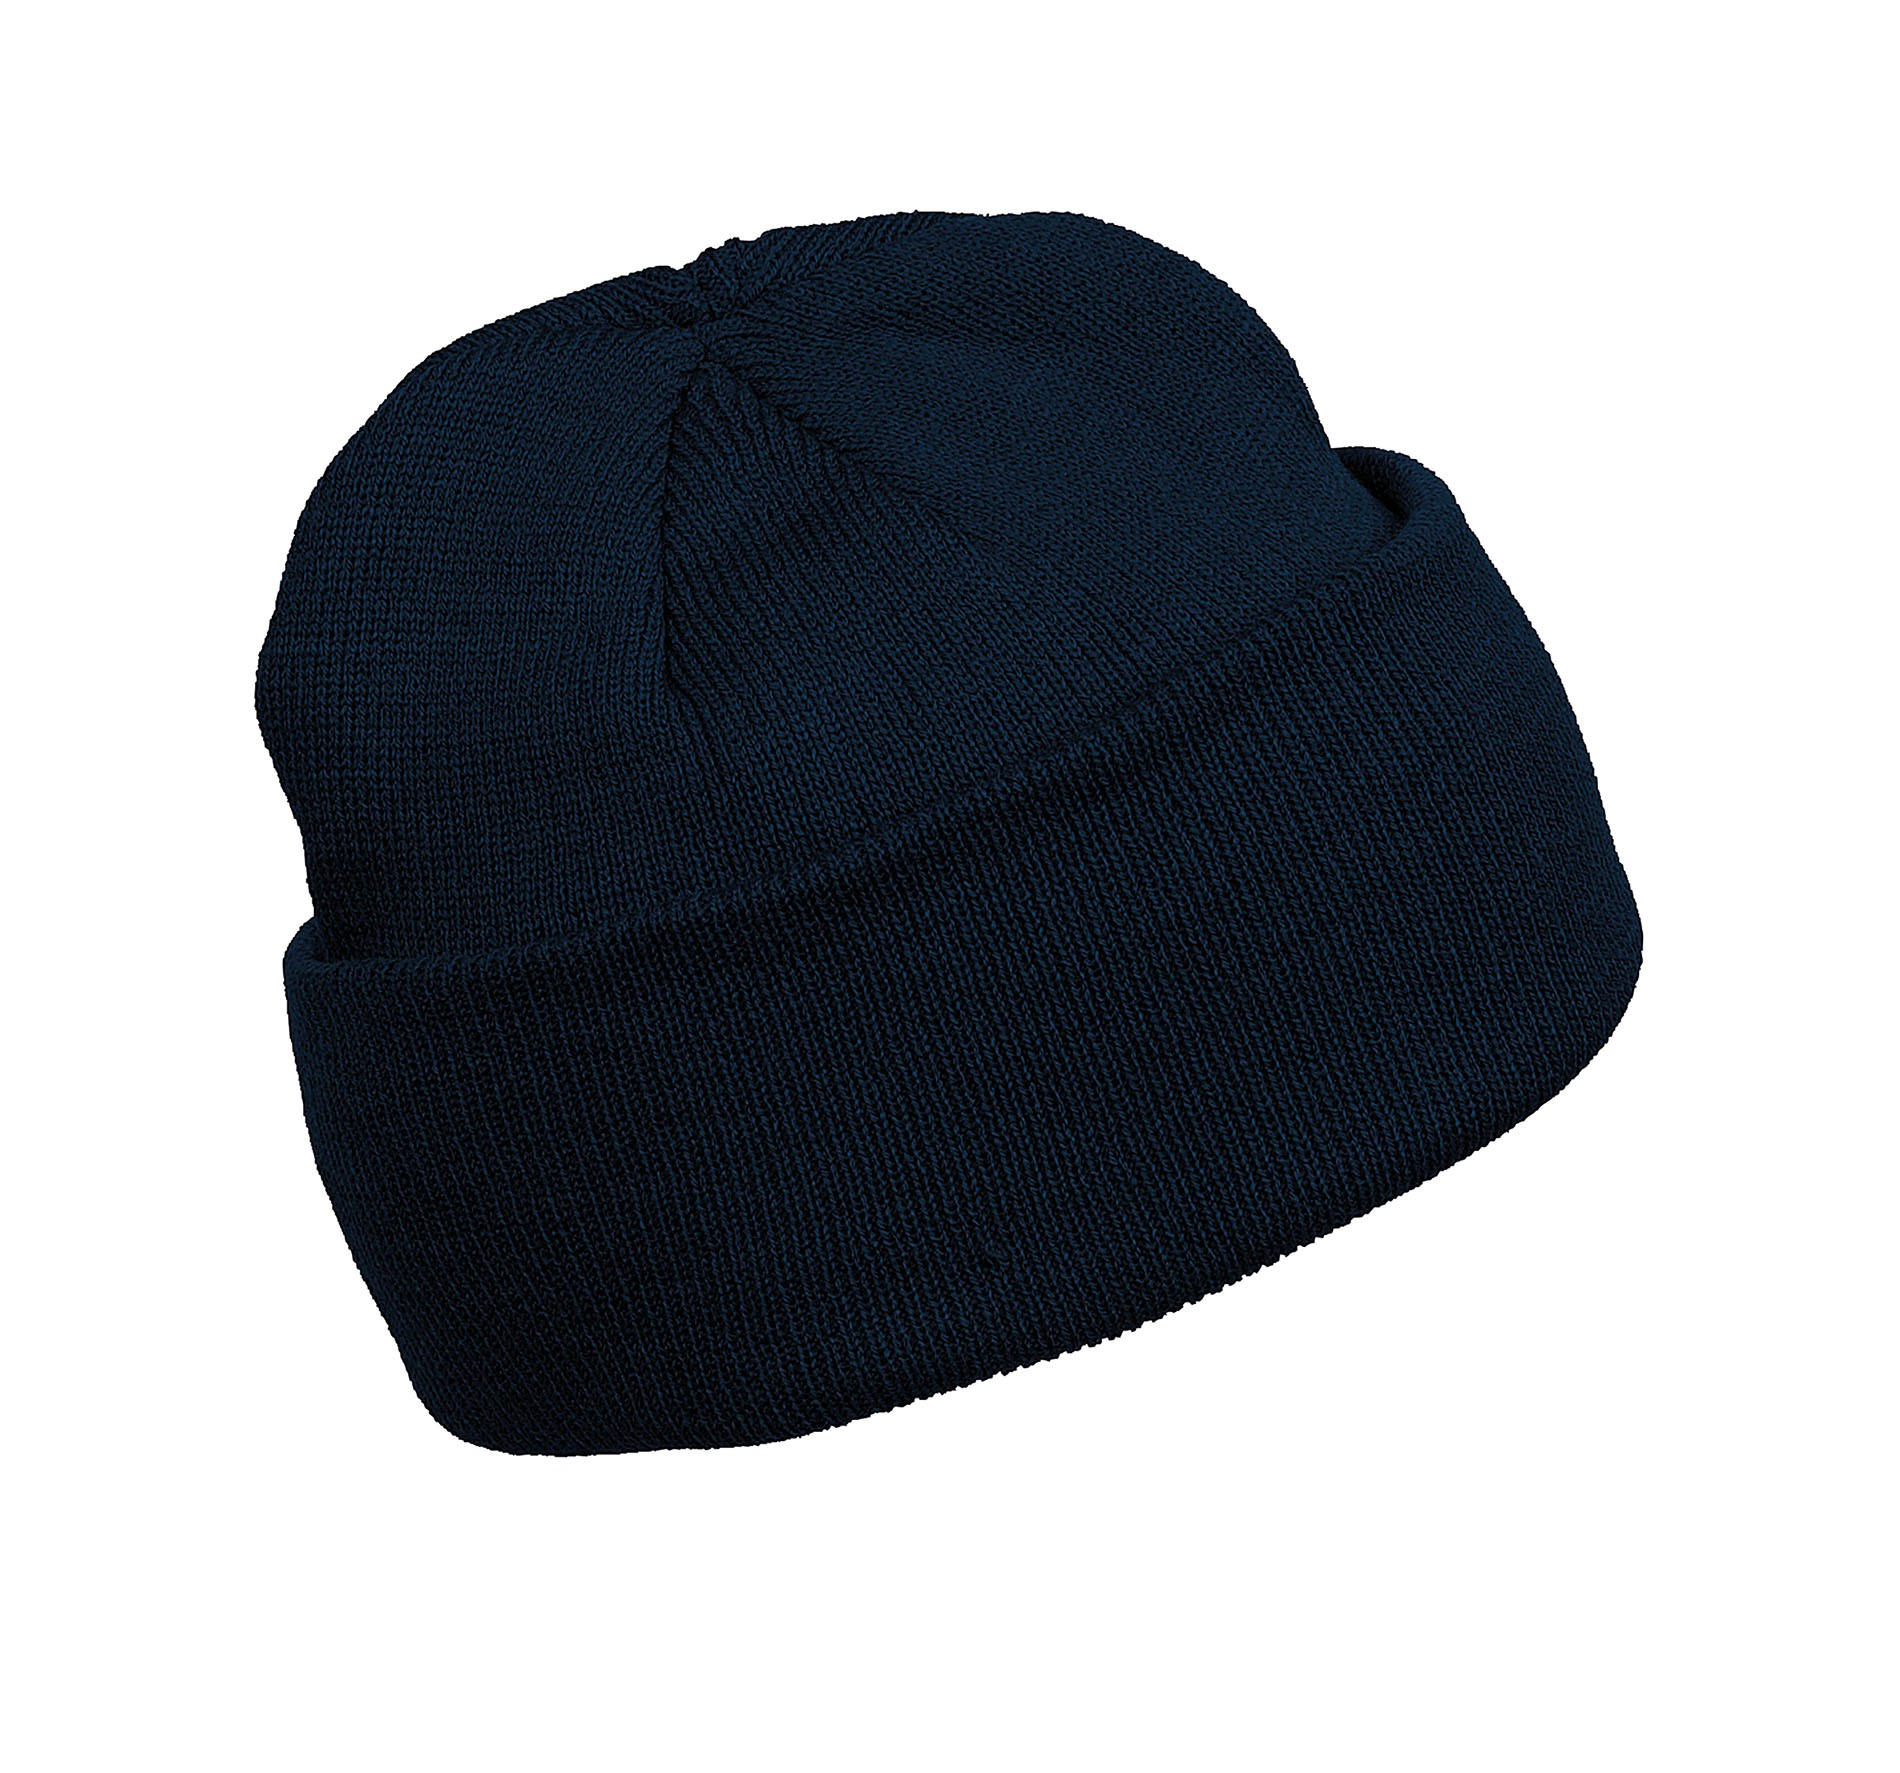 BONNET A REVERS Navy Bleu